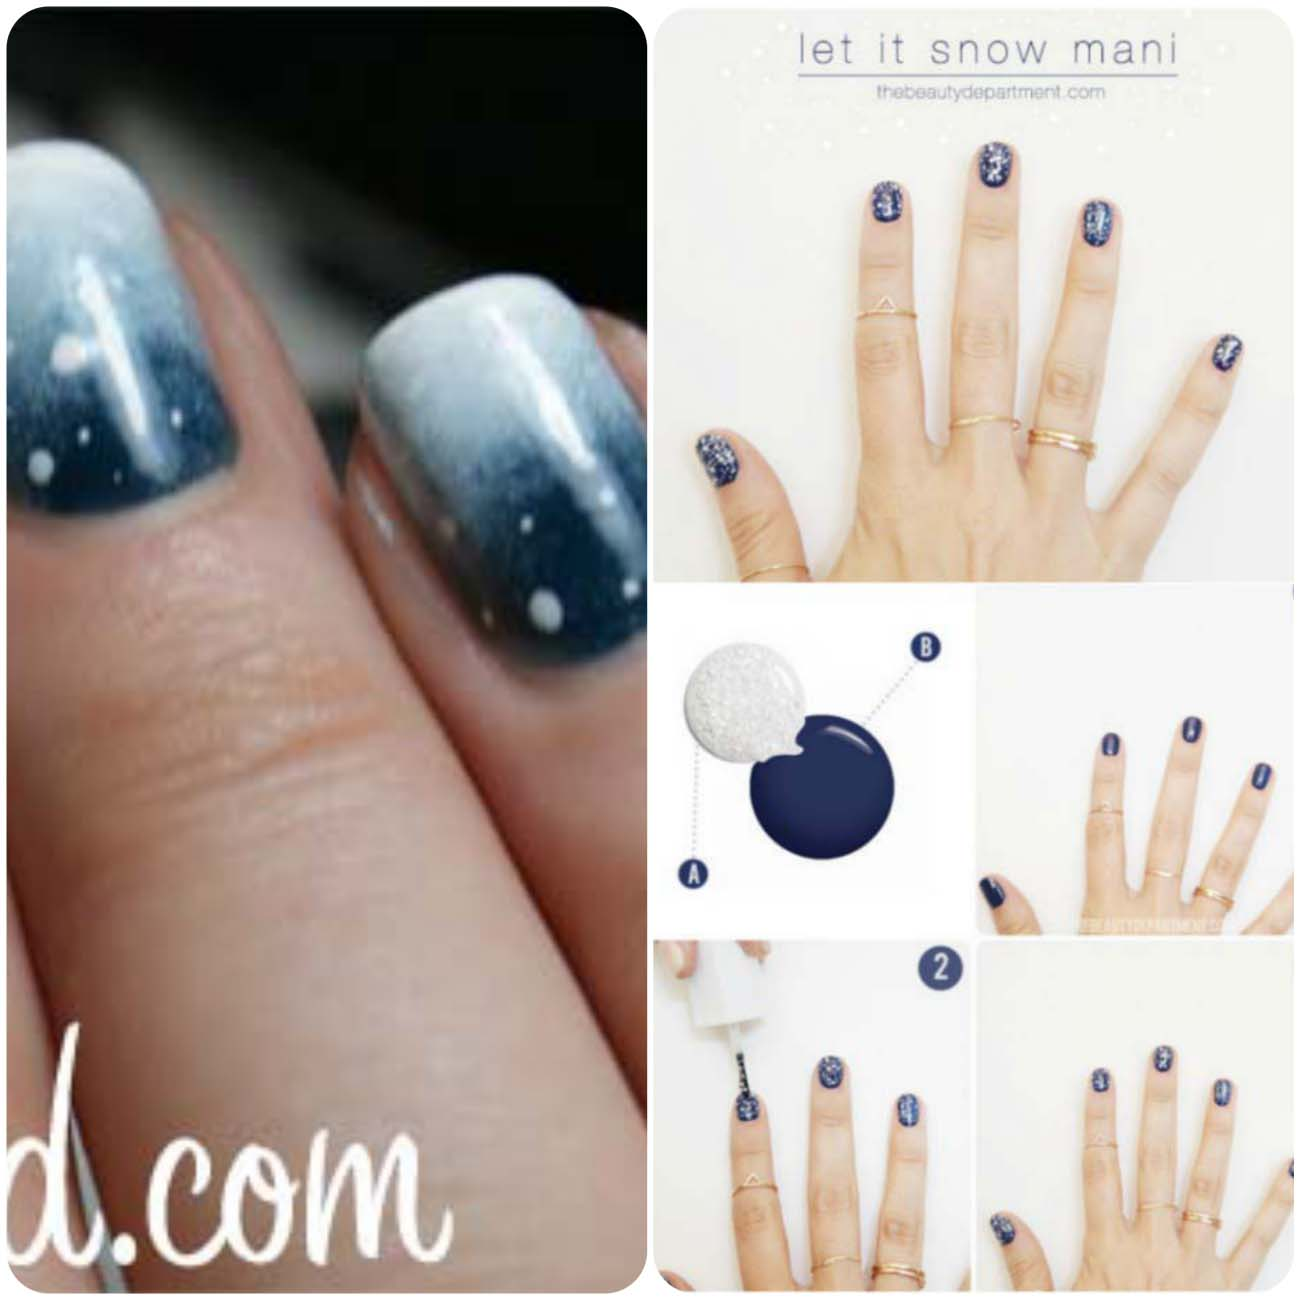 Charistmas Winter Nail art designs (19)_Fotor_Collage